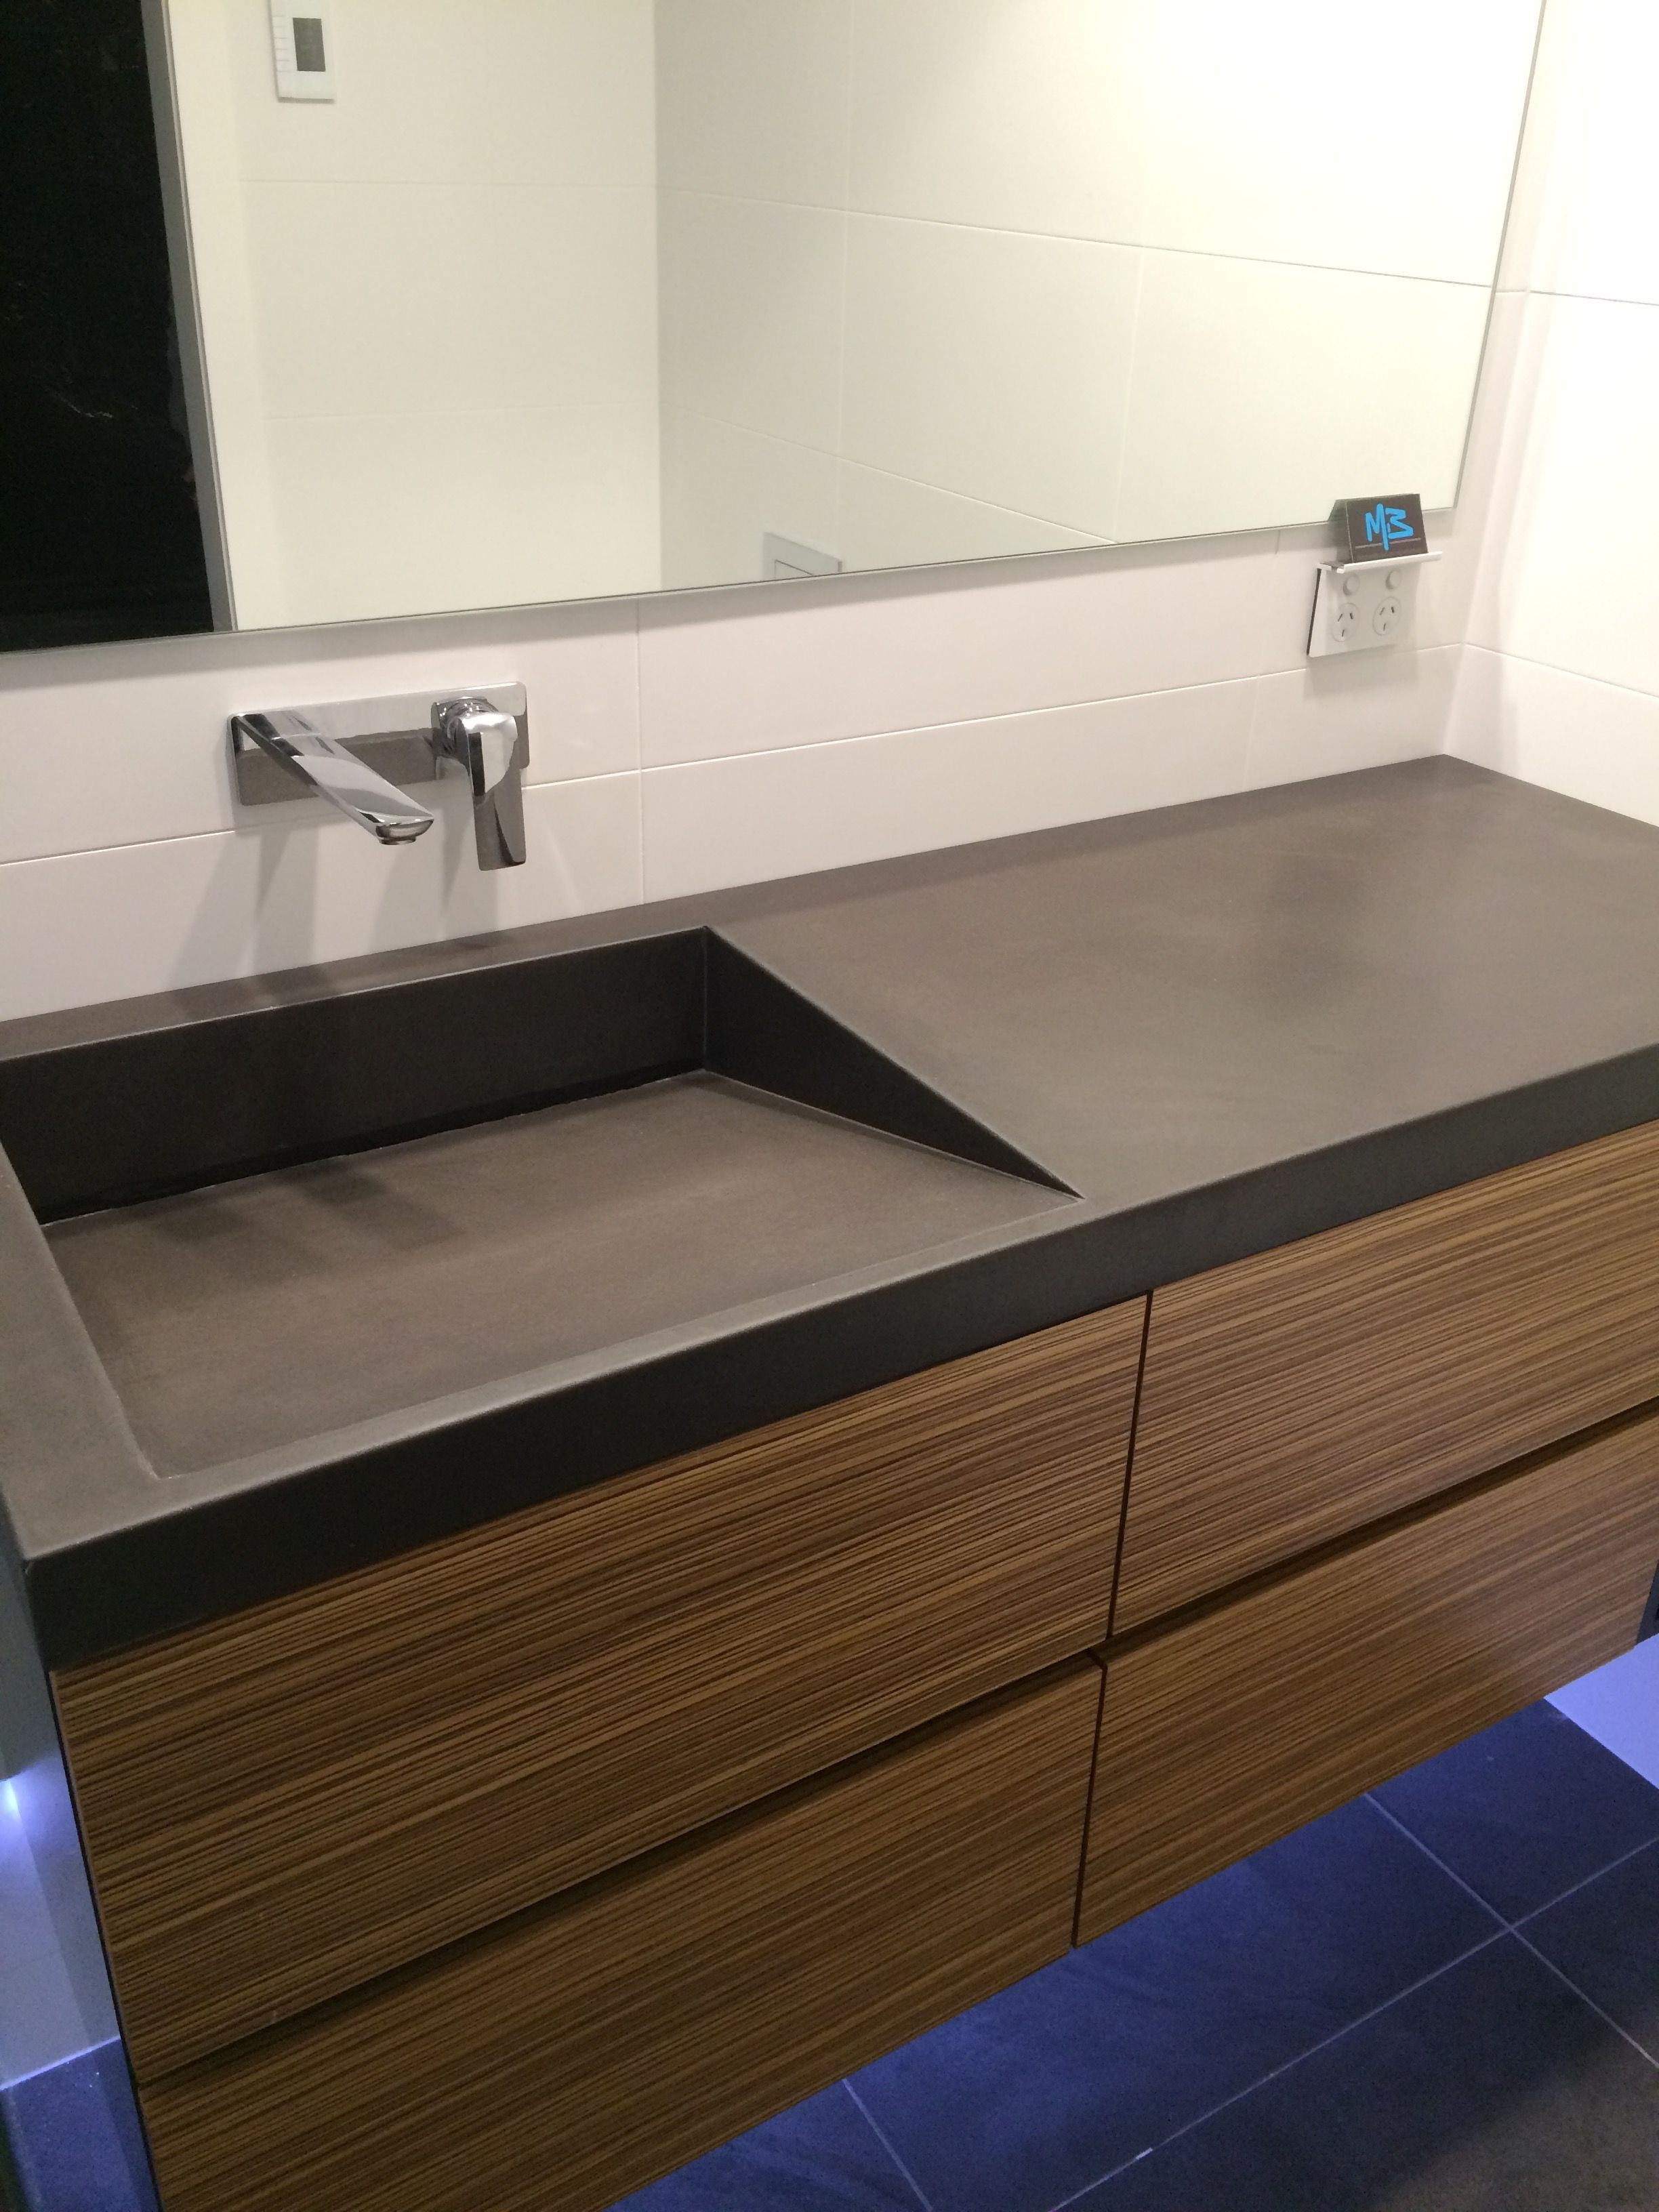 Polished Concrete Vanity Top with integrated sink by